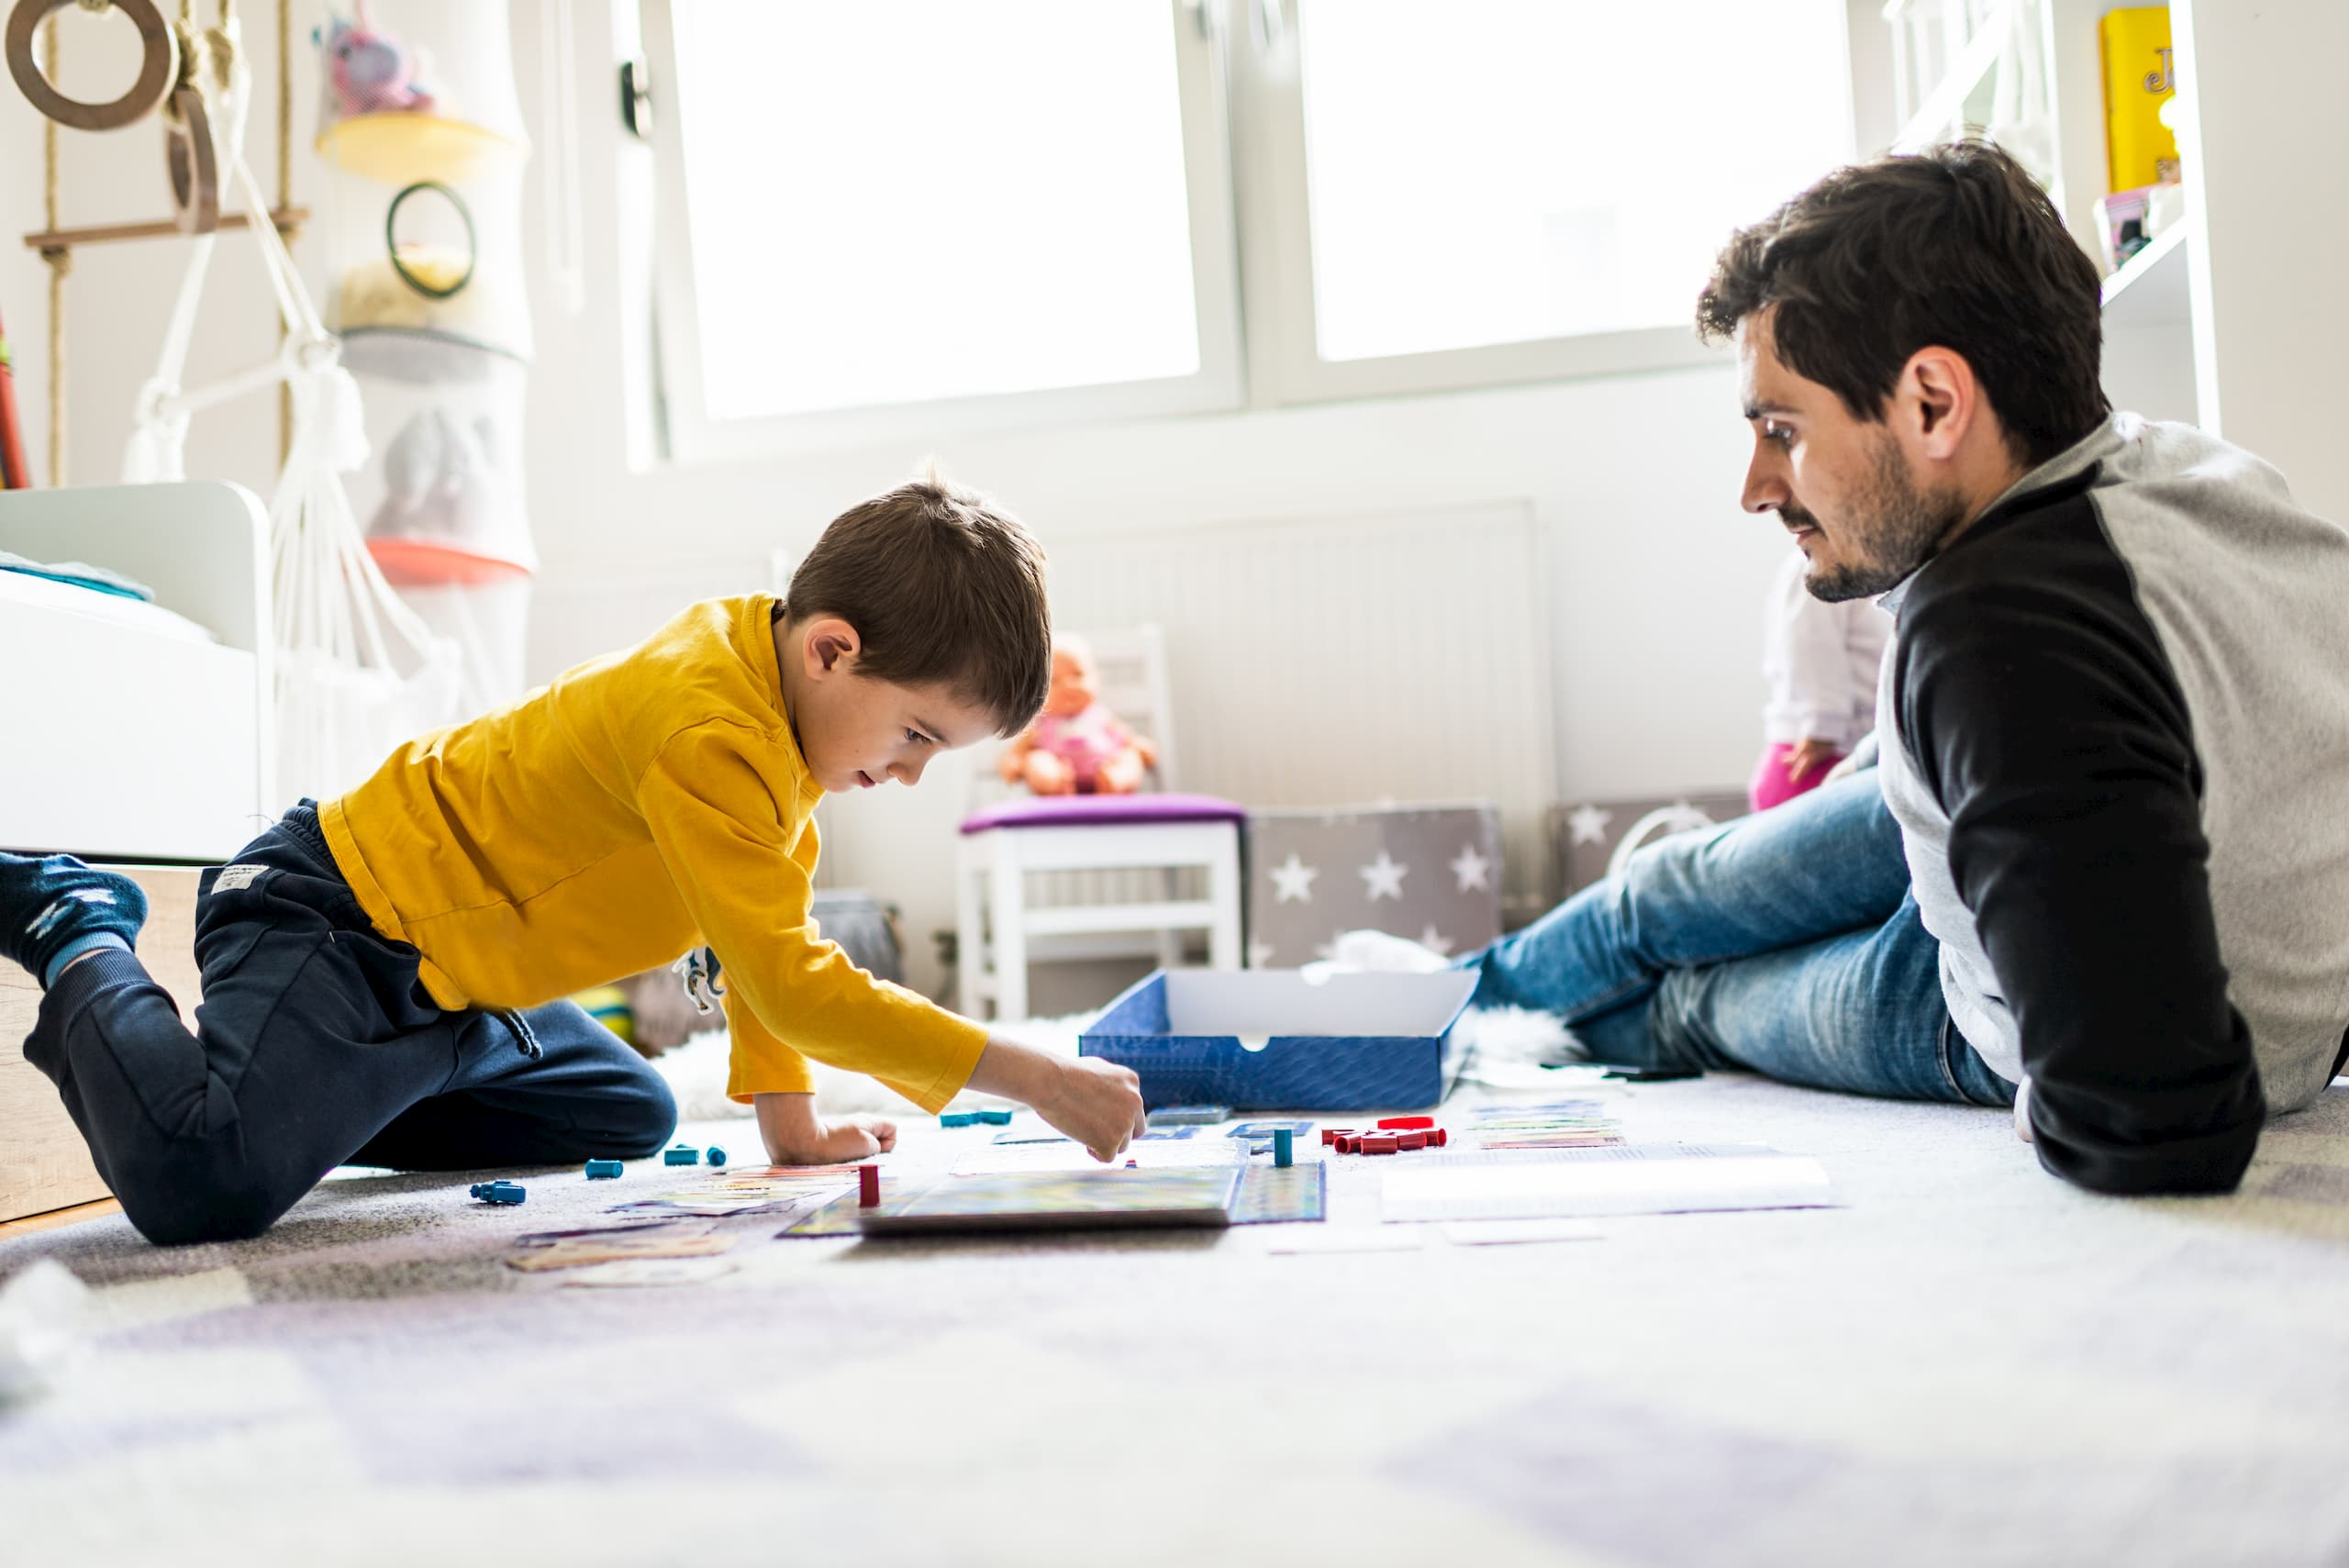 Dad playing with his son in a bright room